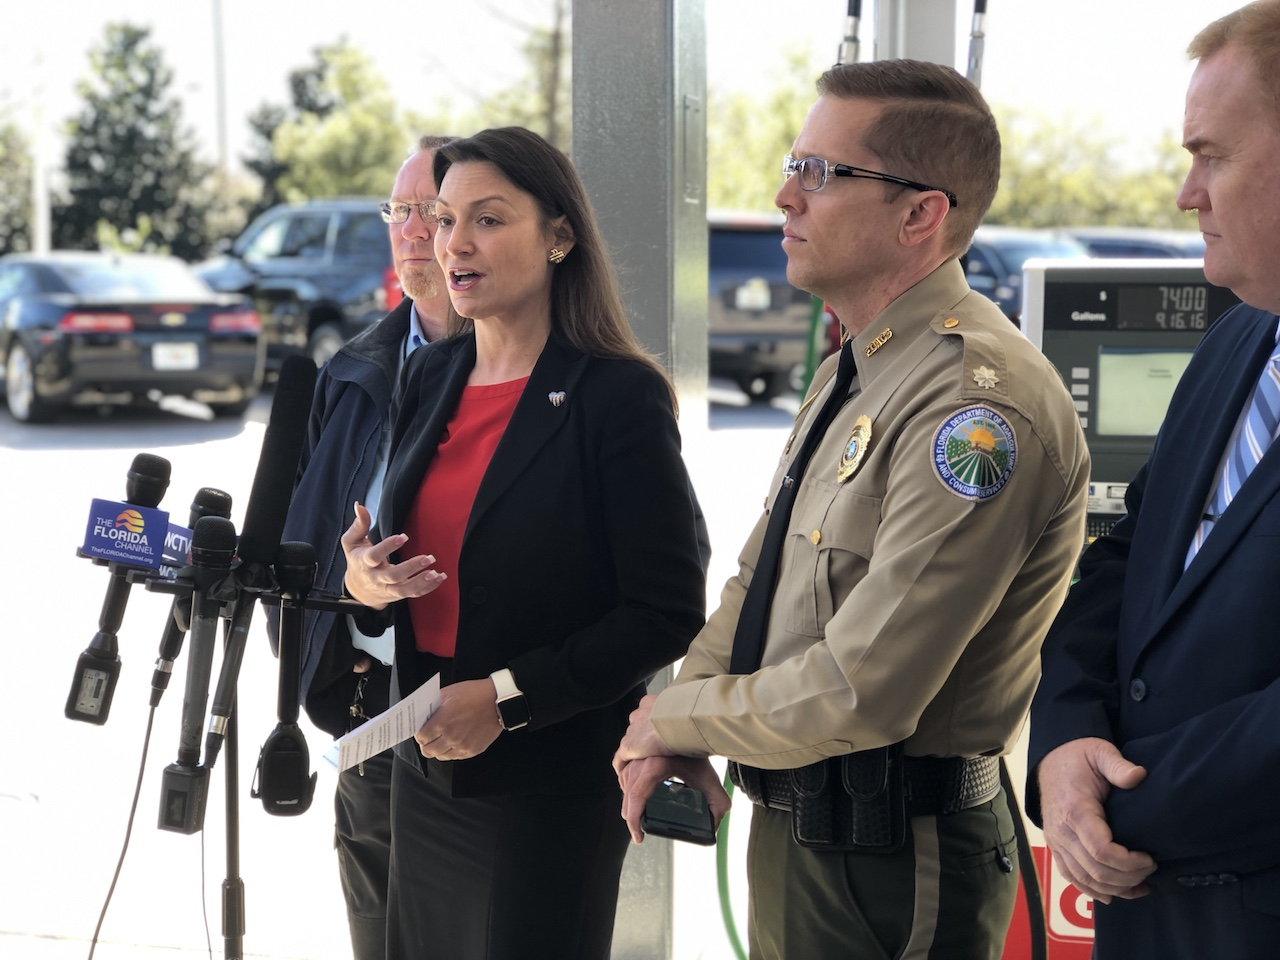 Commissioner Nikki Fried speaks at the pump skimmer inspection event highlighting National Consumer Protection Week on Wednesday, March 6, 2019